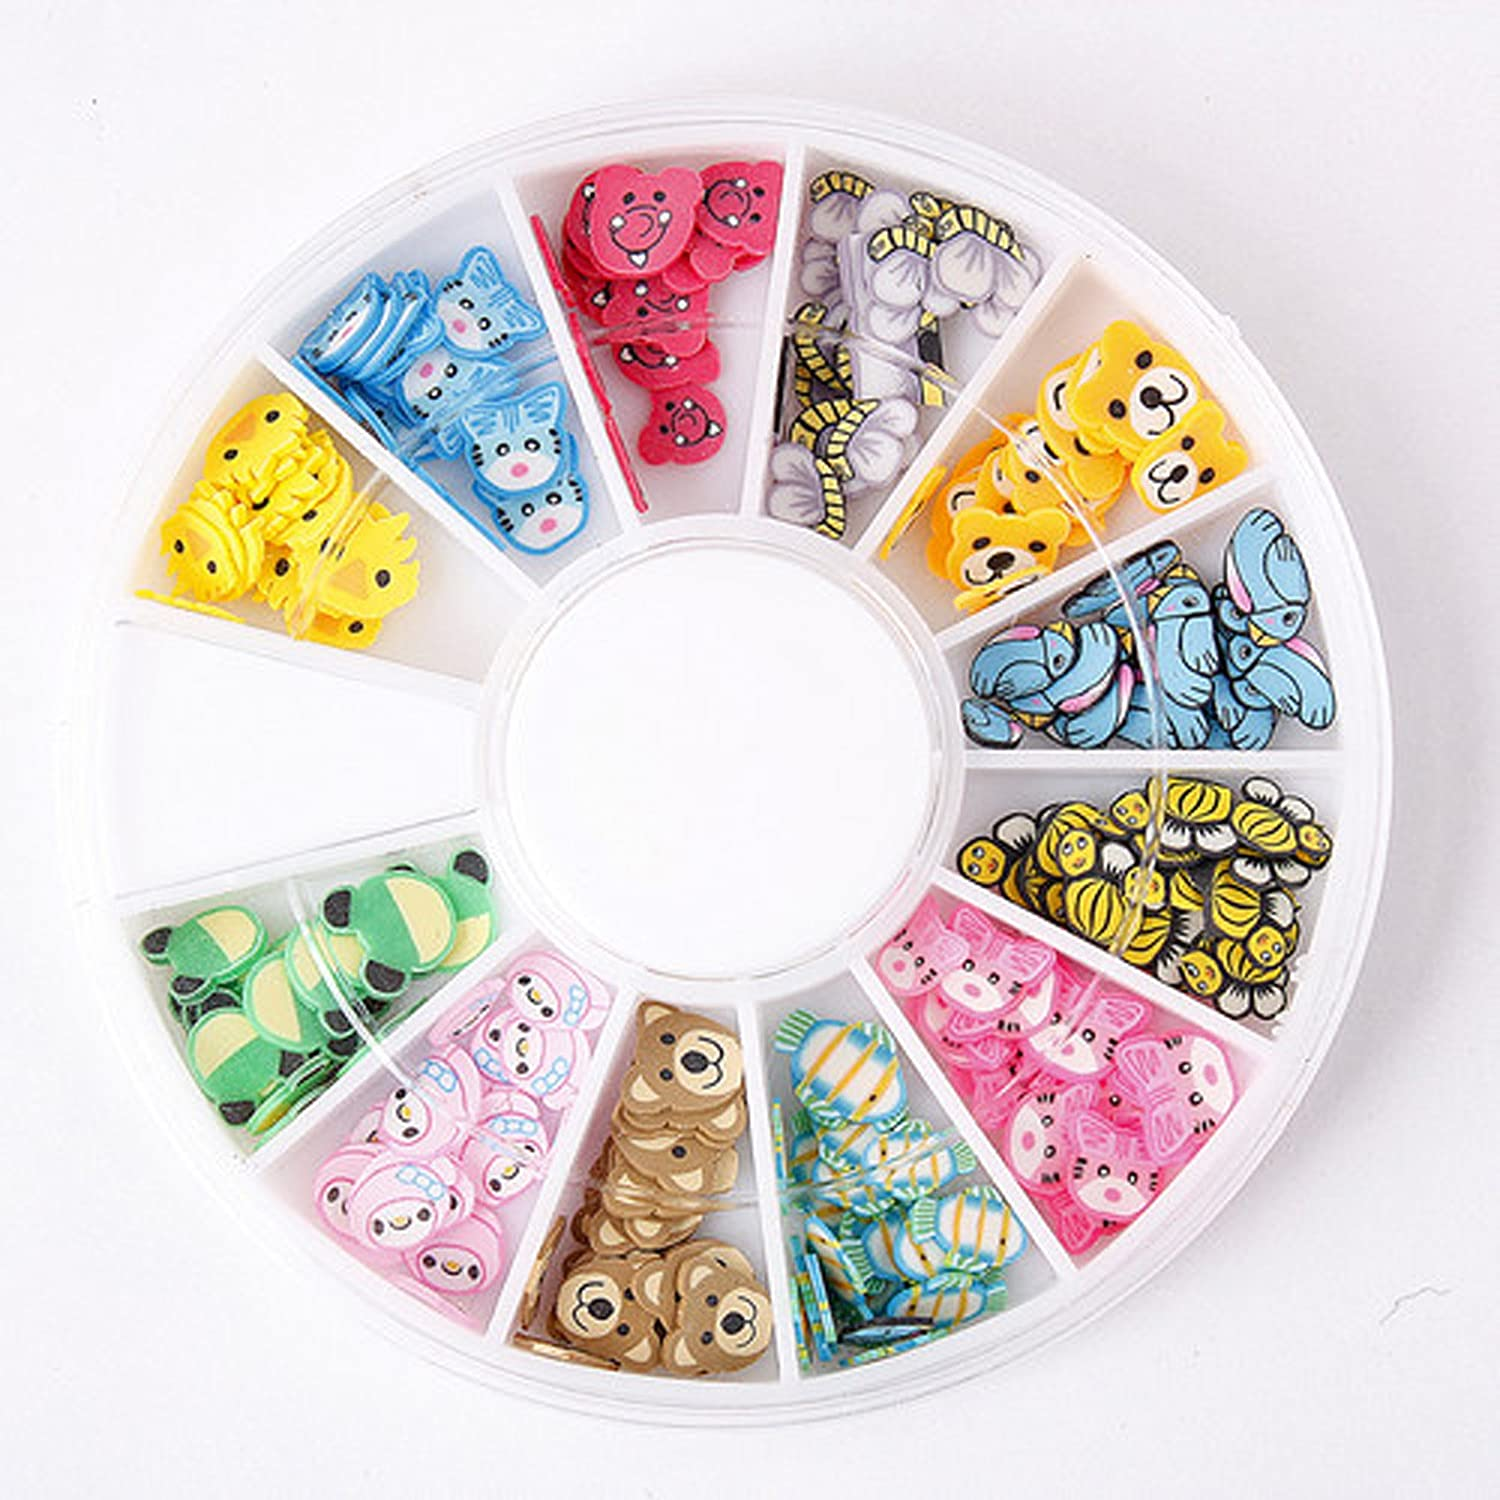 Online limited product 3D Fimo Clay Slice Animal Nail Art Decorating Acrylic Denver Mall Wh Tips Uv